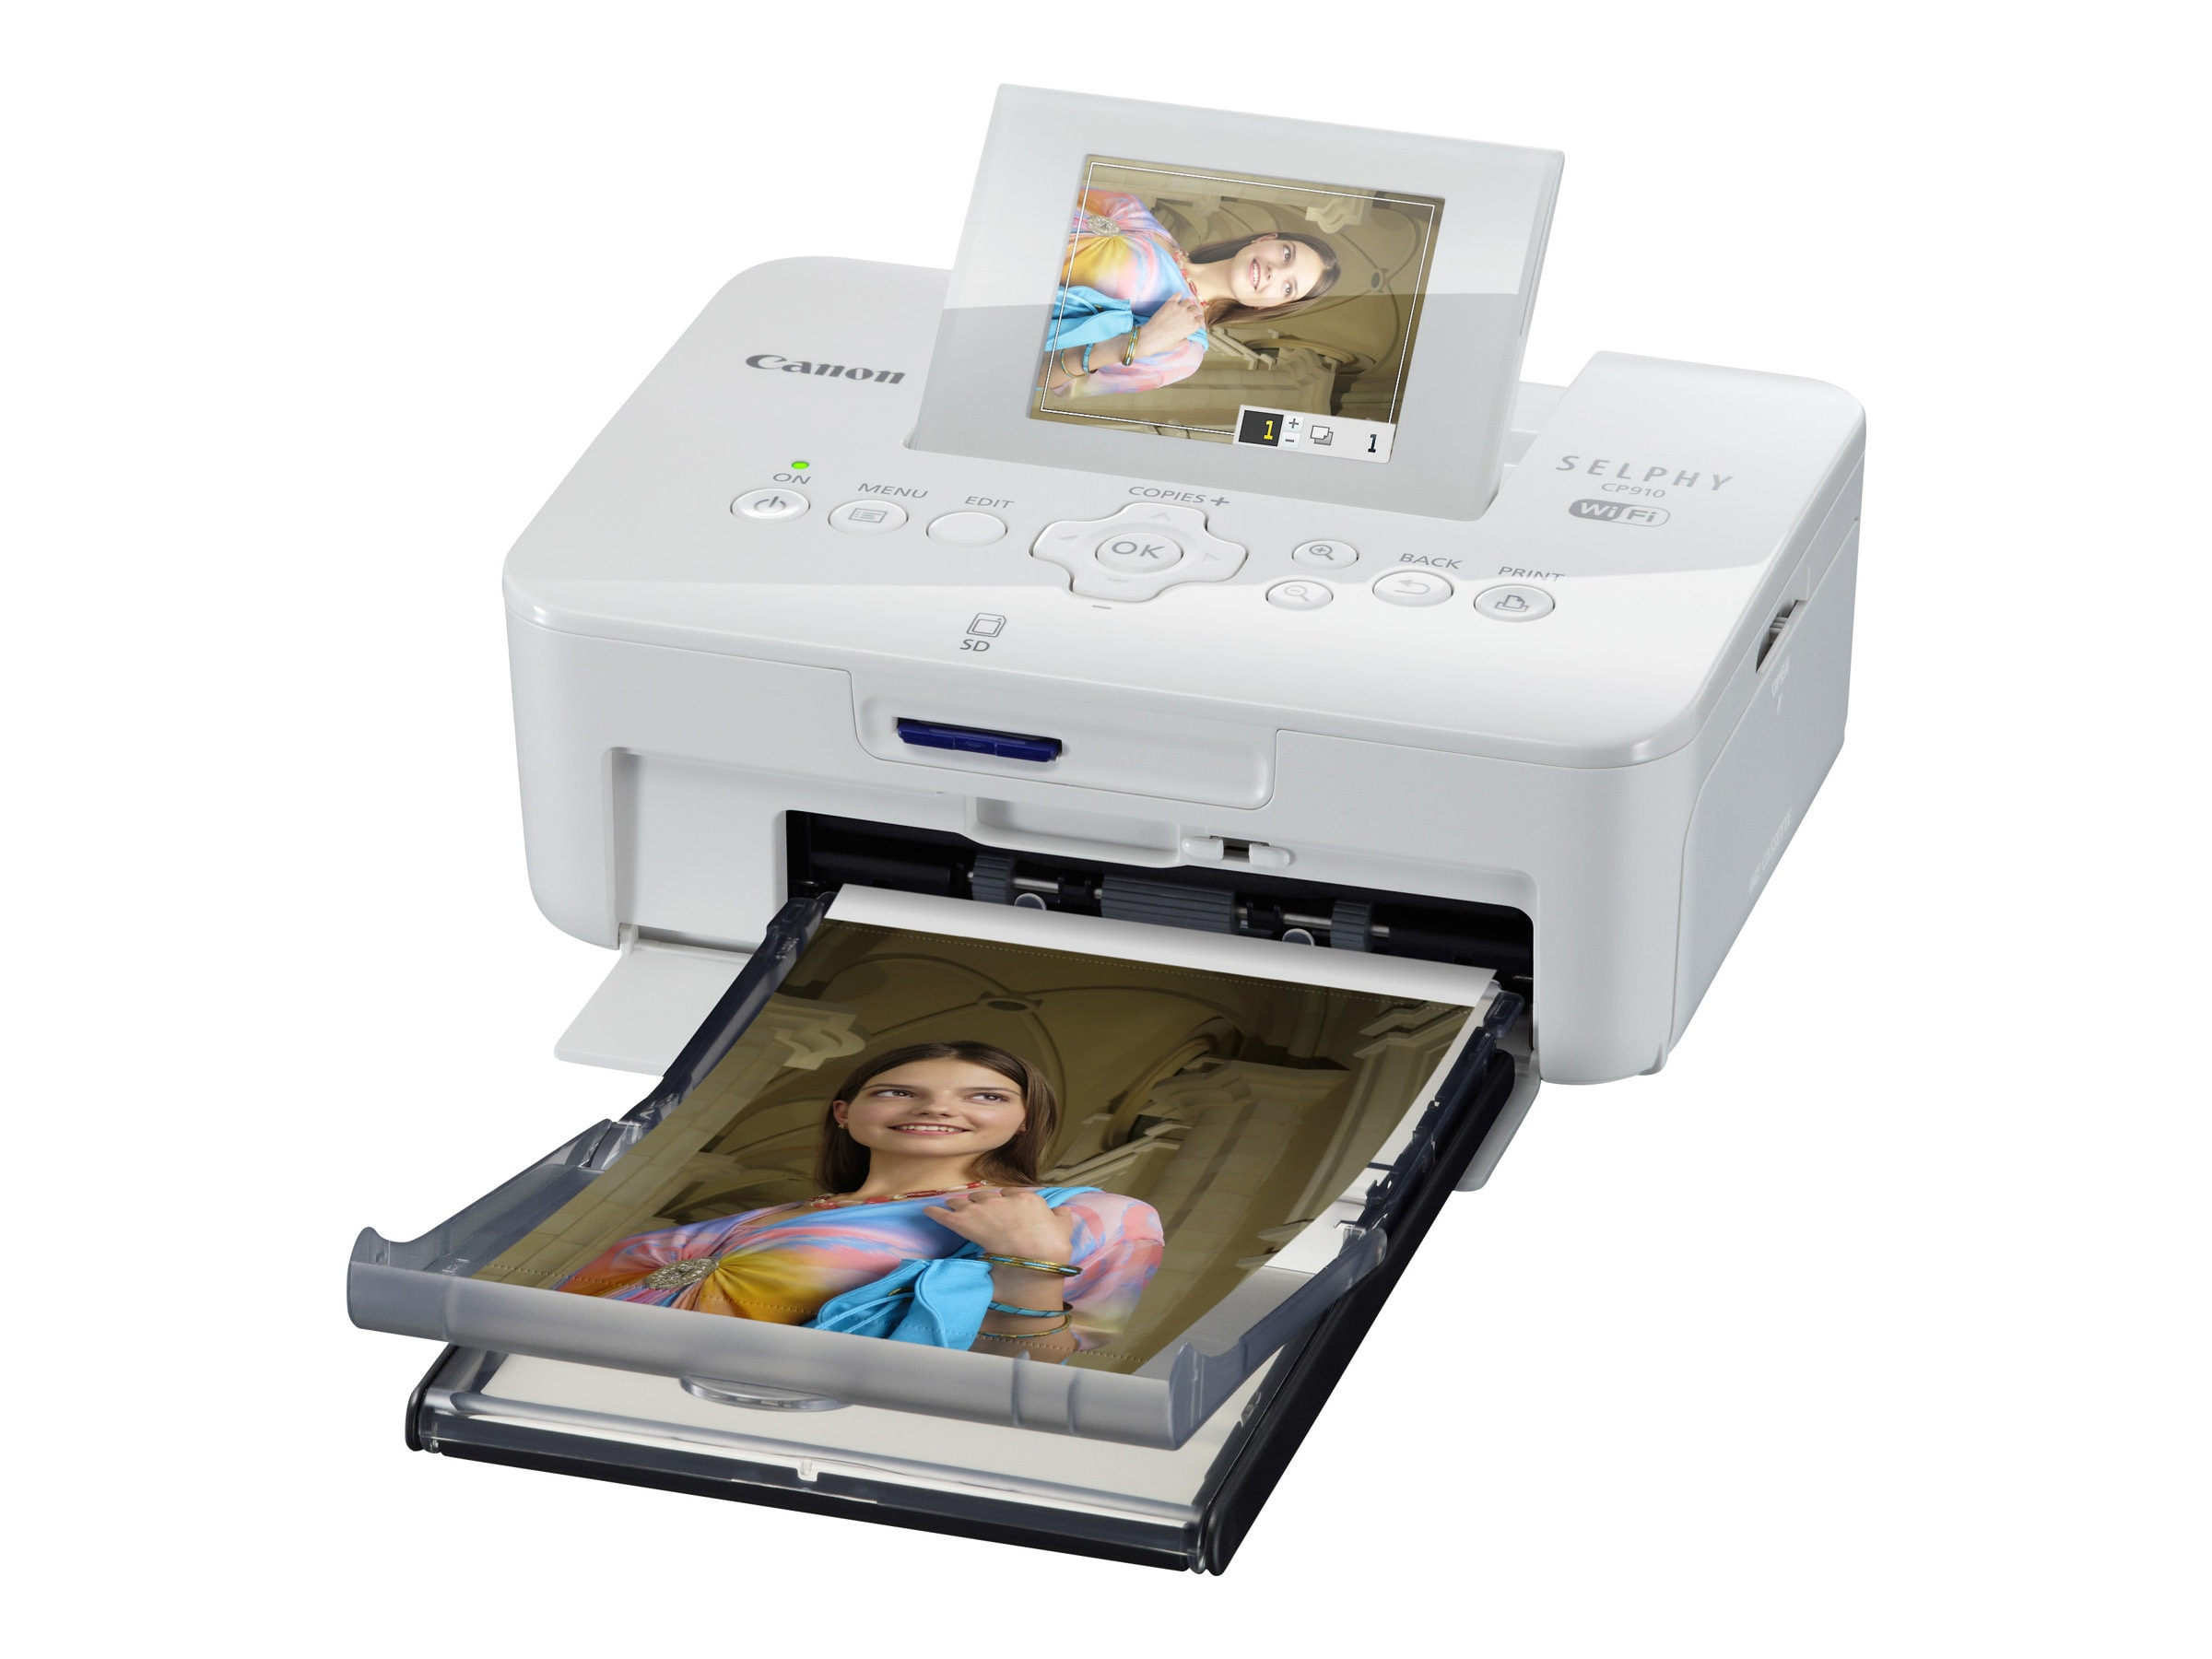 Canon SELPHY CP910 Compact Photo Printer - White